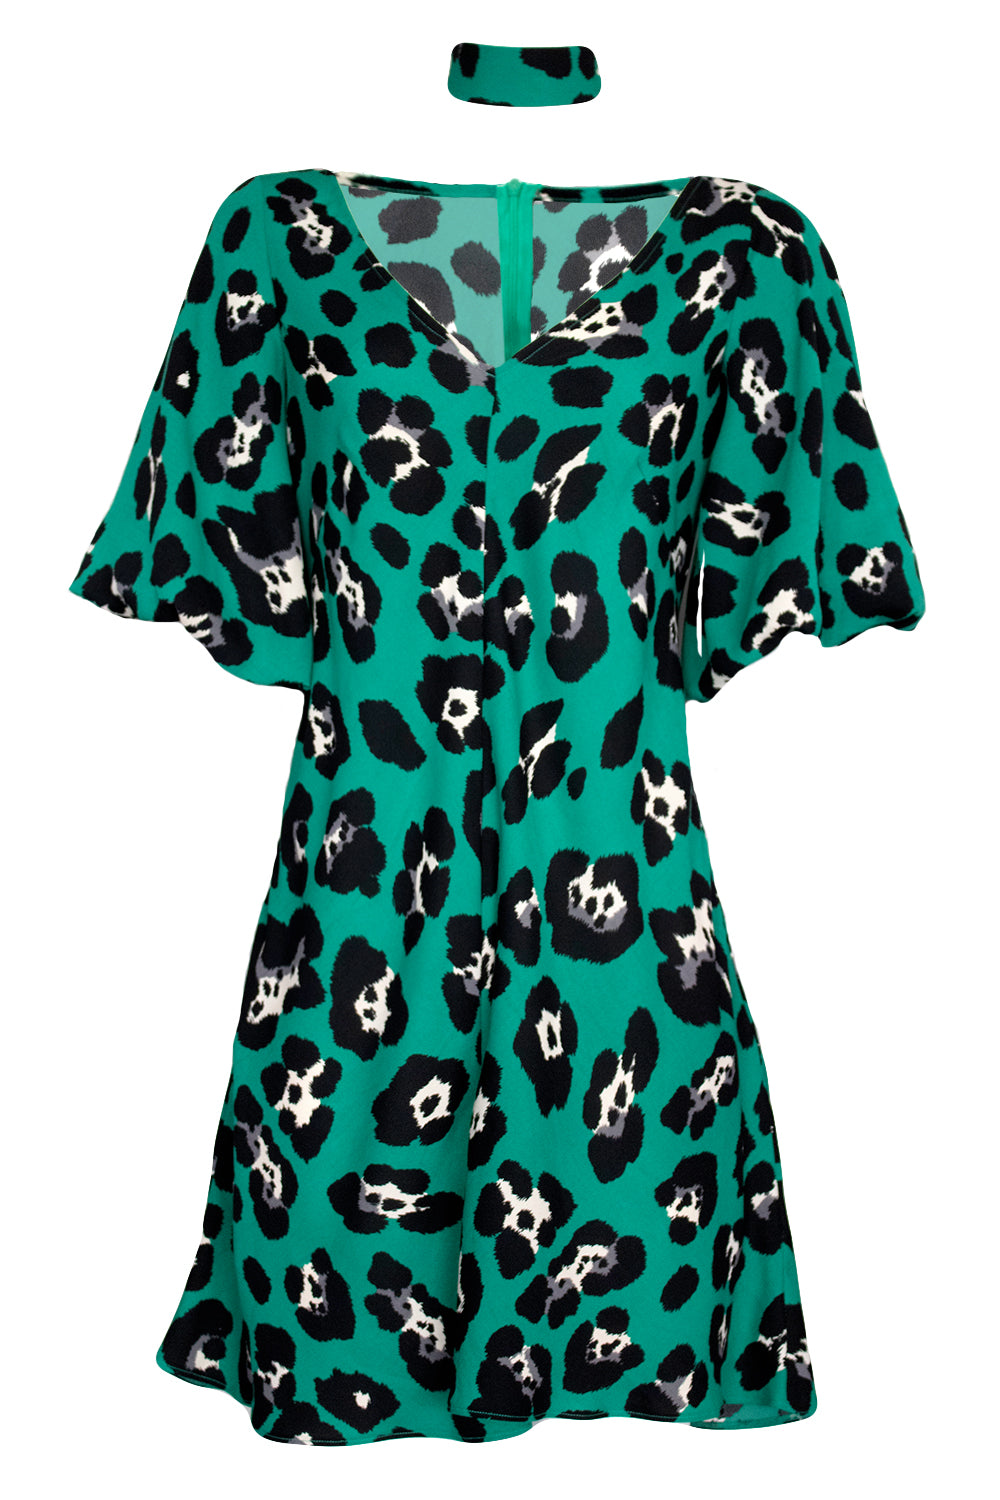 Imogen Playsuit Dress | Everybody Loves Lucy Dresses NZ | Womens Fashion NZ | Playsuit NZ | Occasion Dress NZ | Leopard Print